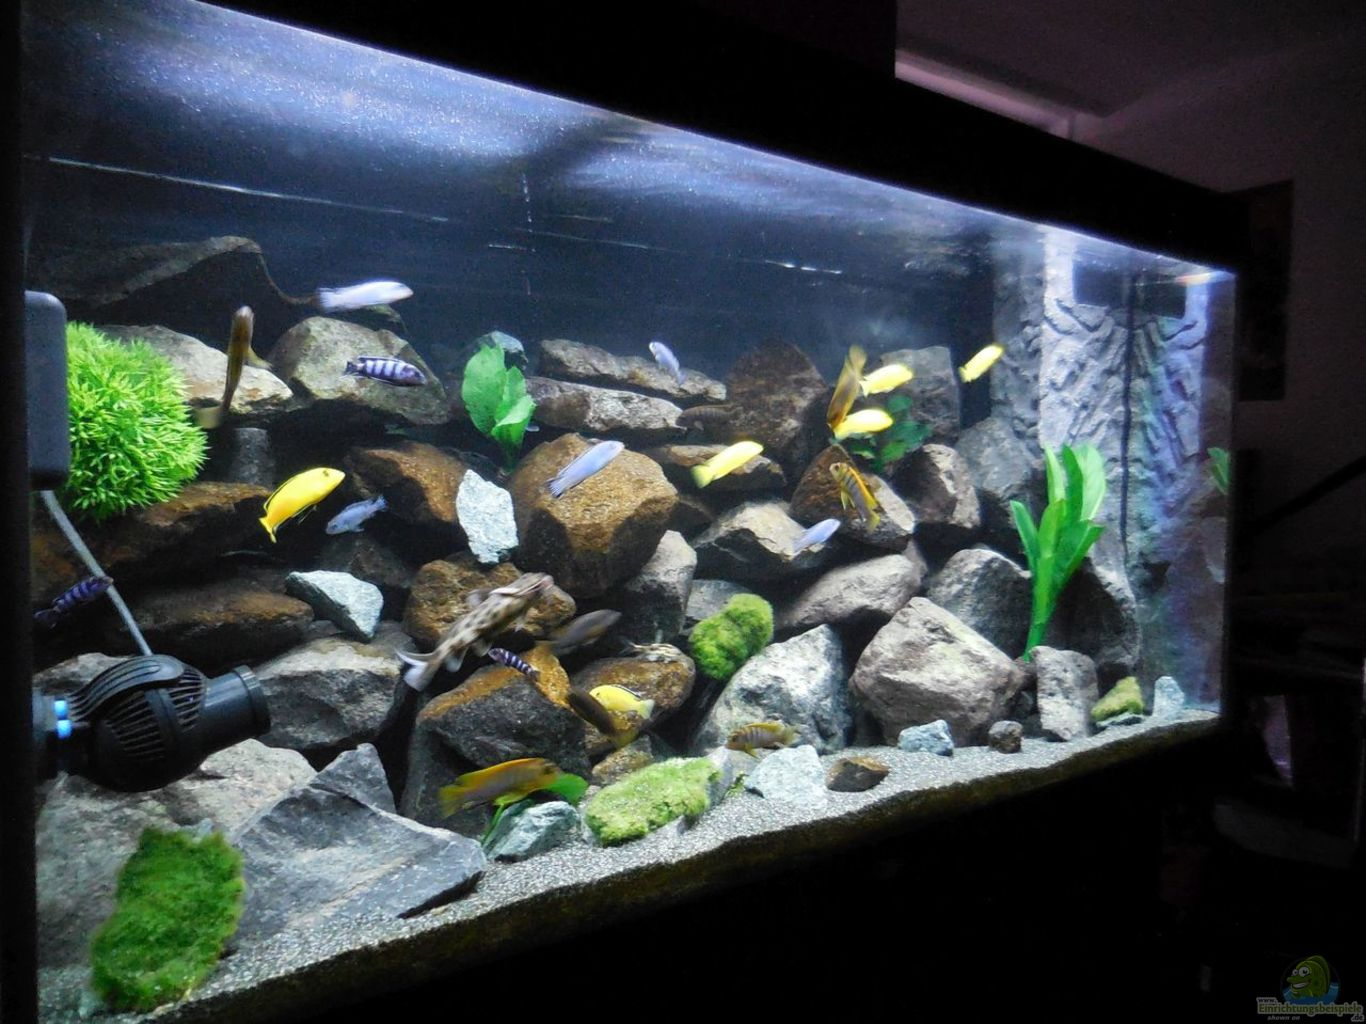 aquarium kevin s malawibecken aus kevin s malawibecken von kevin leonhard. Black Bedroom Furniture Sets. Home Design Ideas